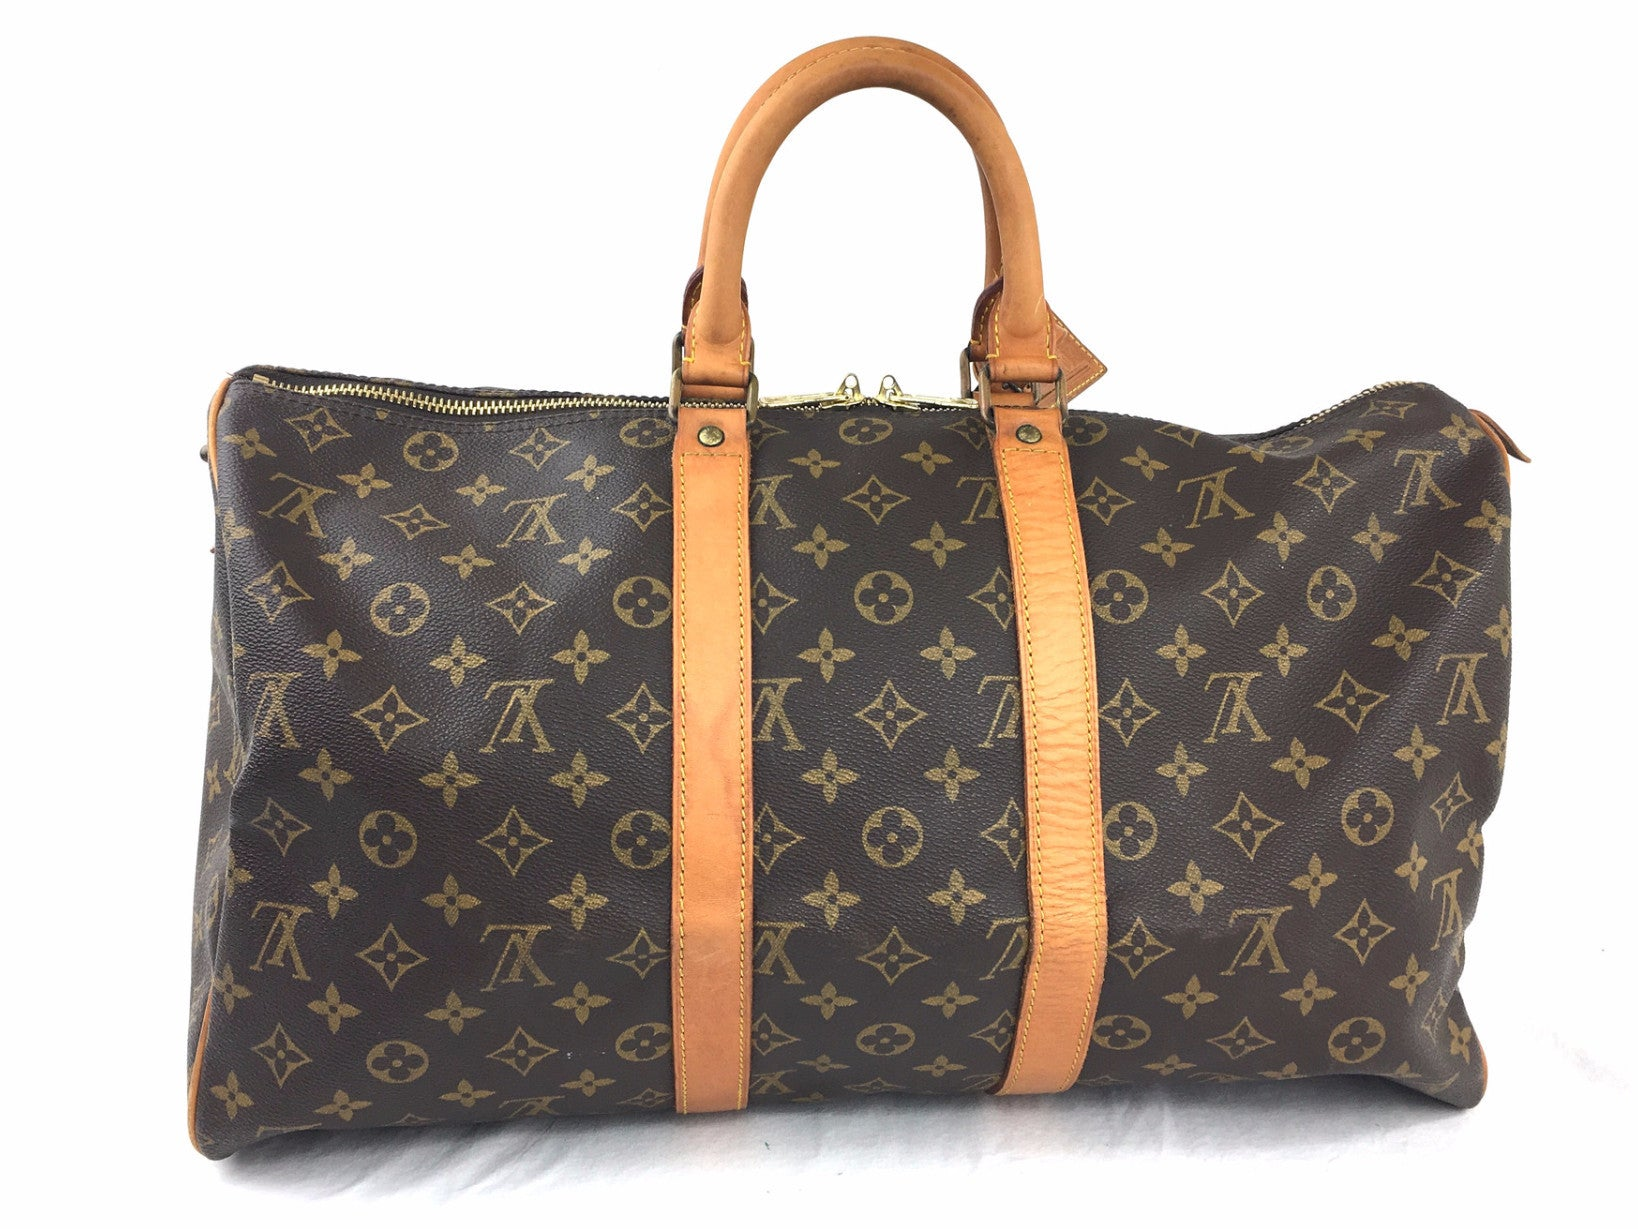 LOUIS VUITTON Monogram Keepall 45 Duffel